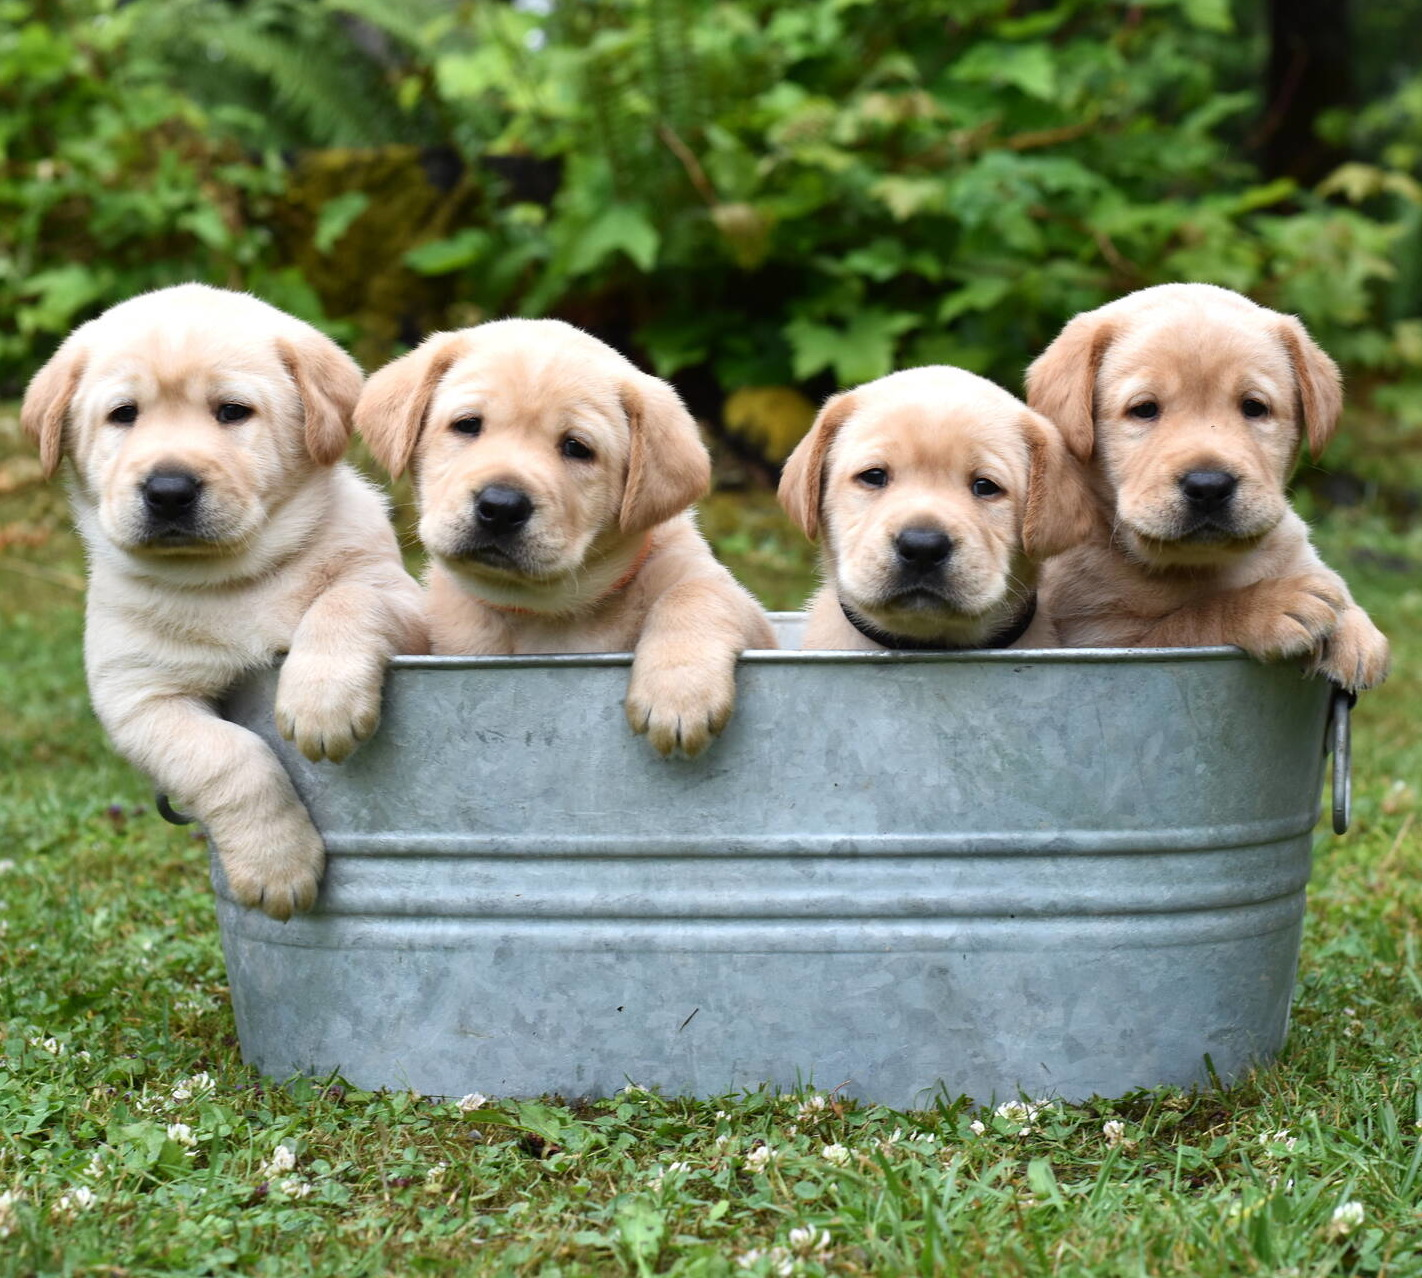 Yellow labrador puppies-2019-18.JPG